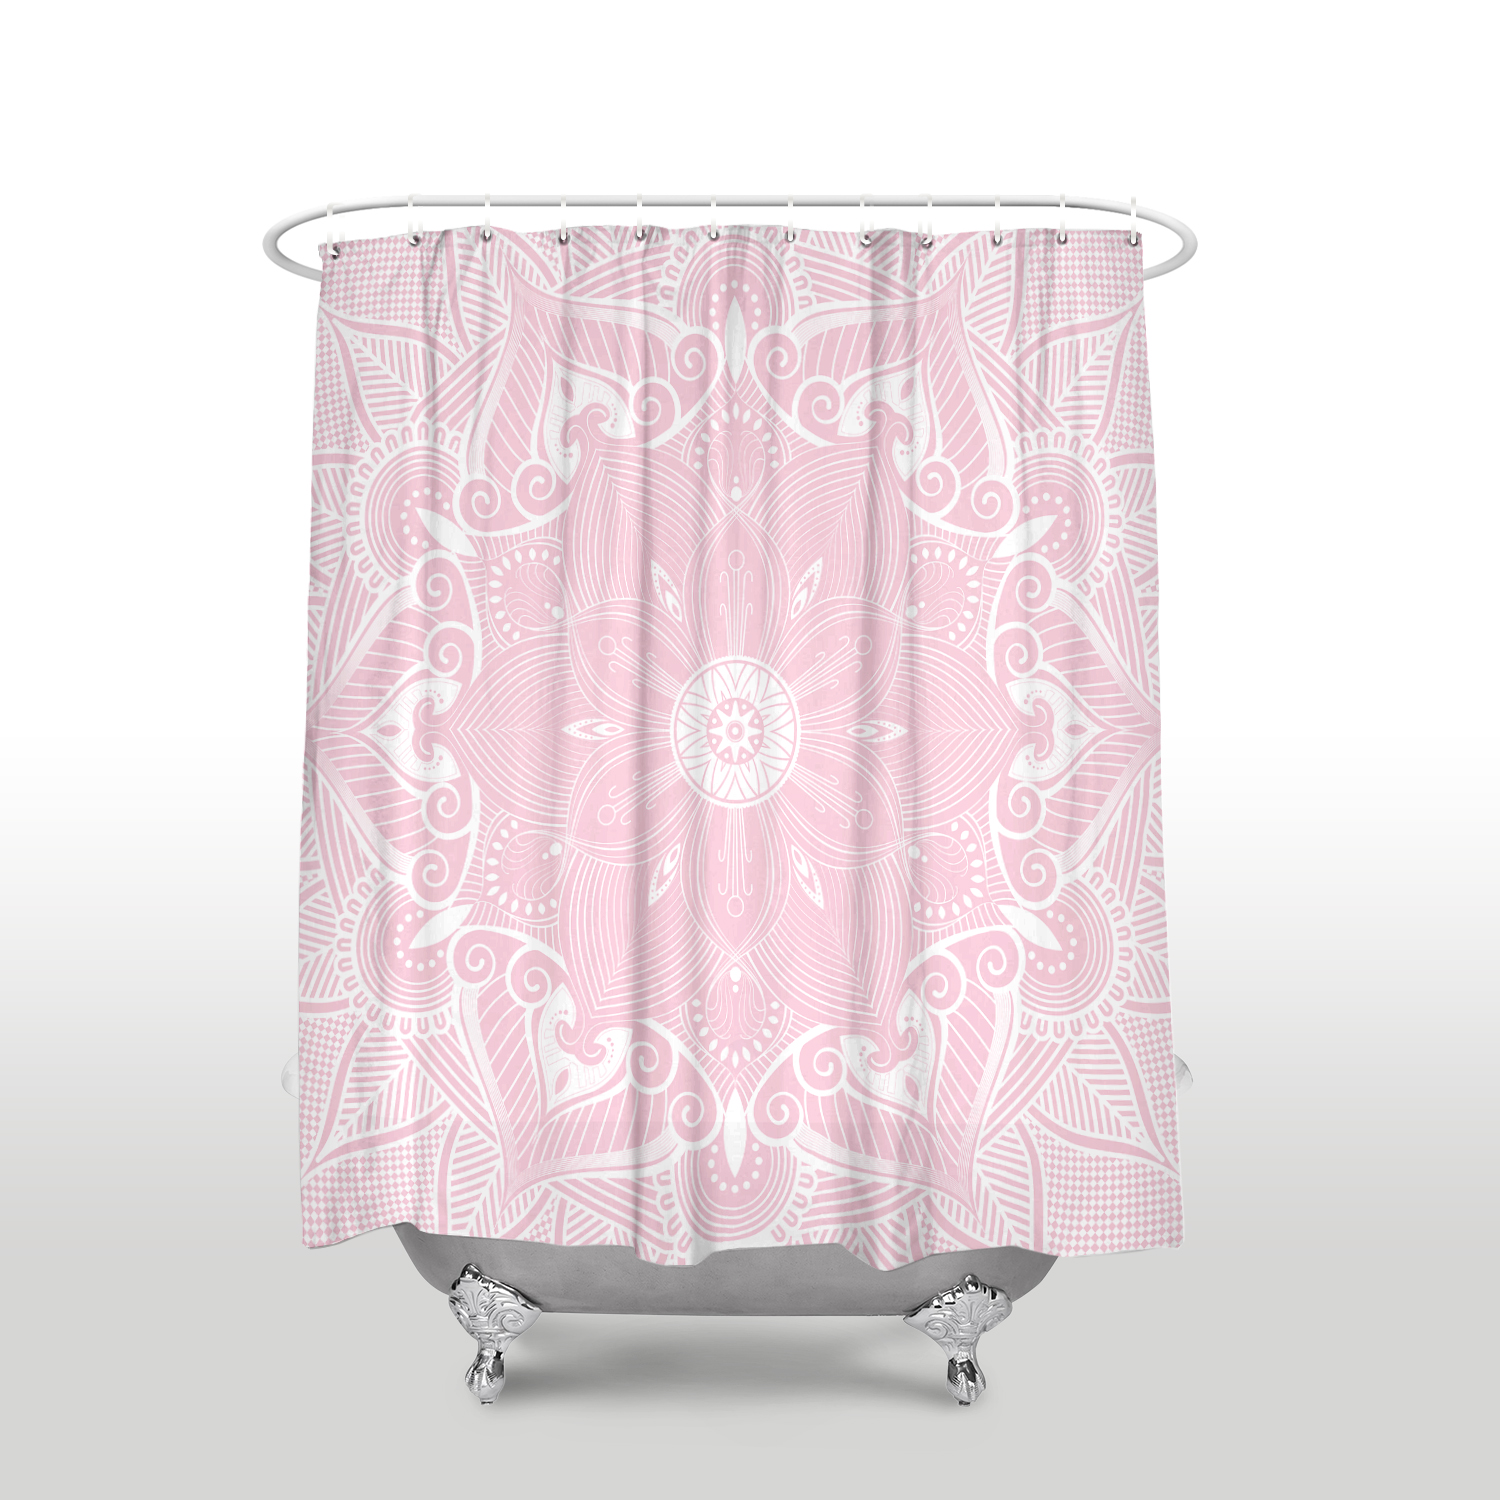 Us 18 51 40 Off New Arrival Mandala Waterproof Printed Shower Curtain With Hooks Polyester Fabric Pink Bathroom Curtains For Home Decorations In